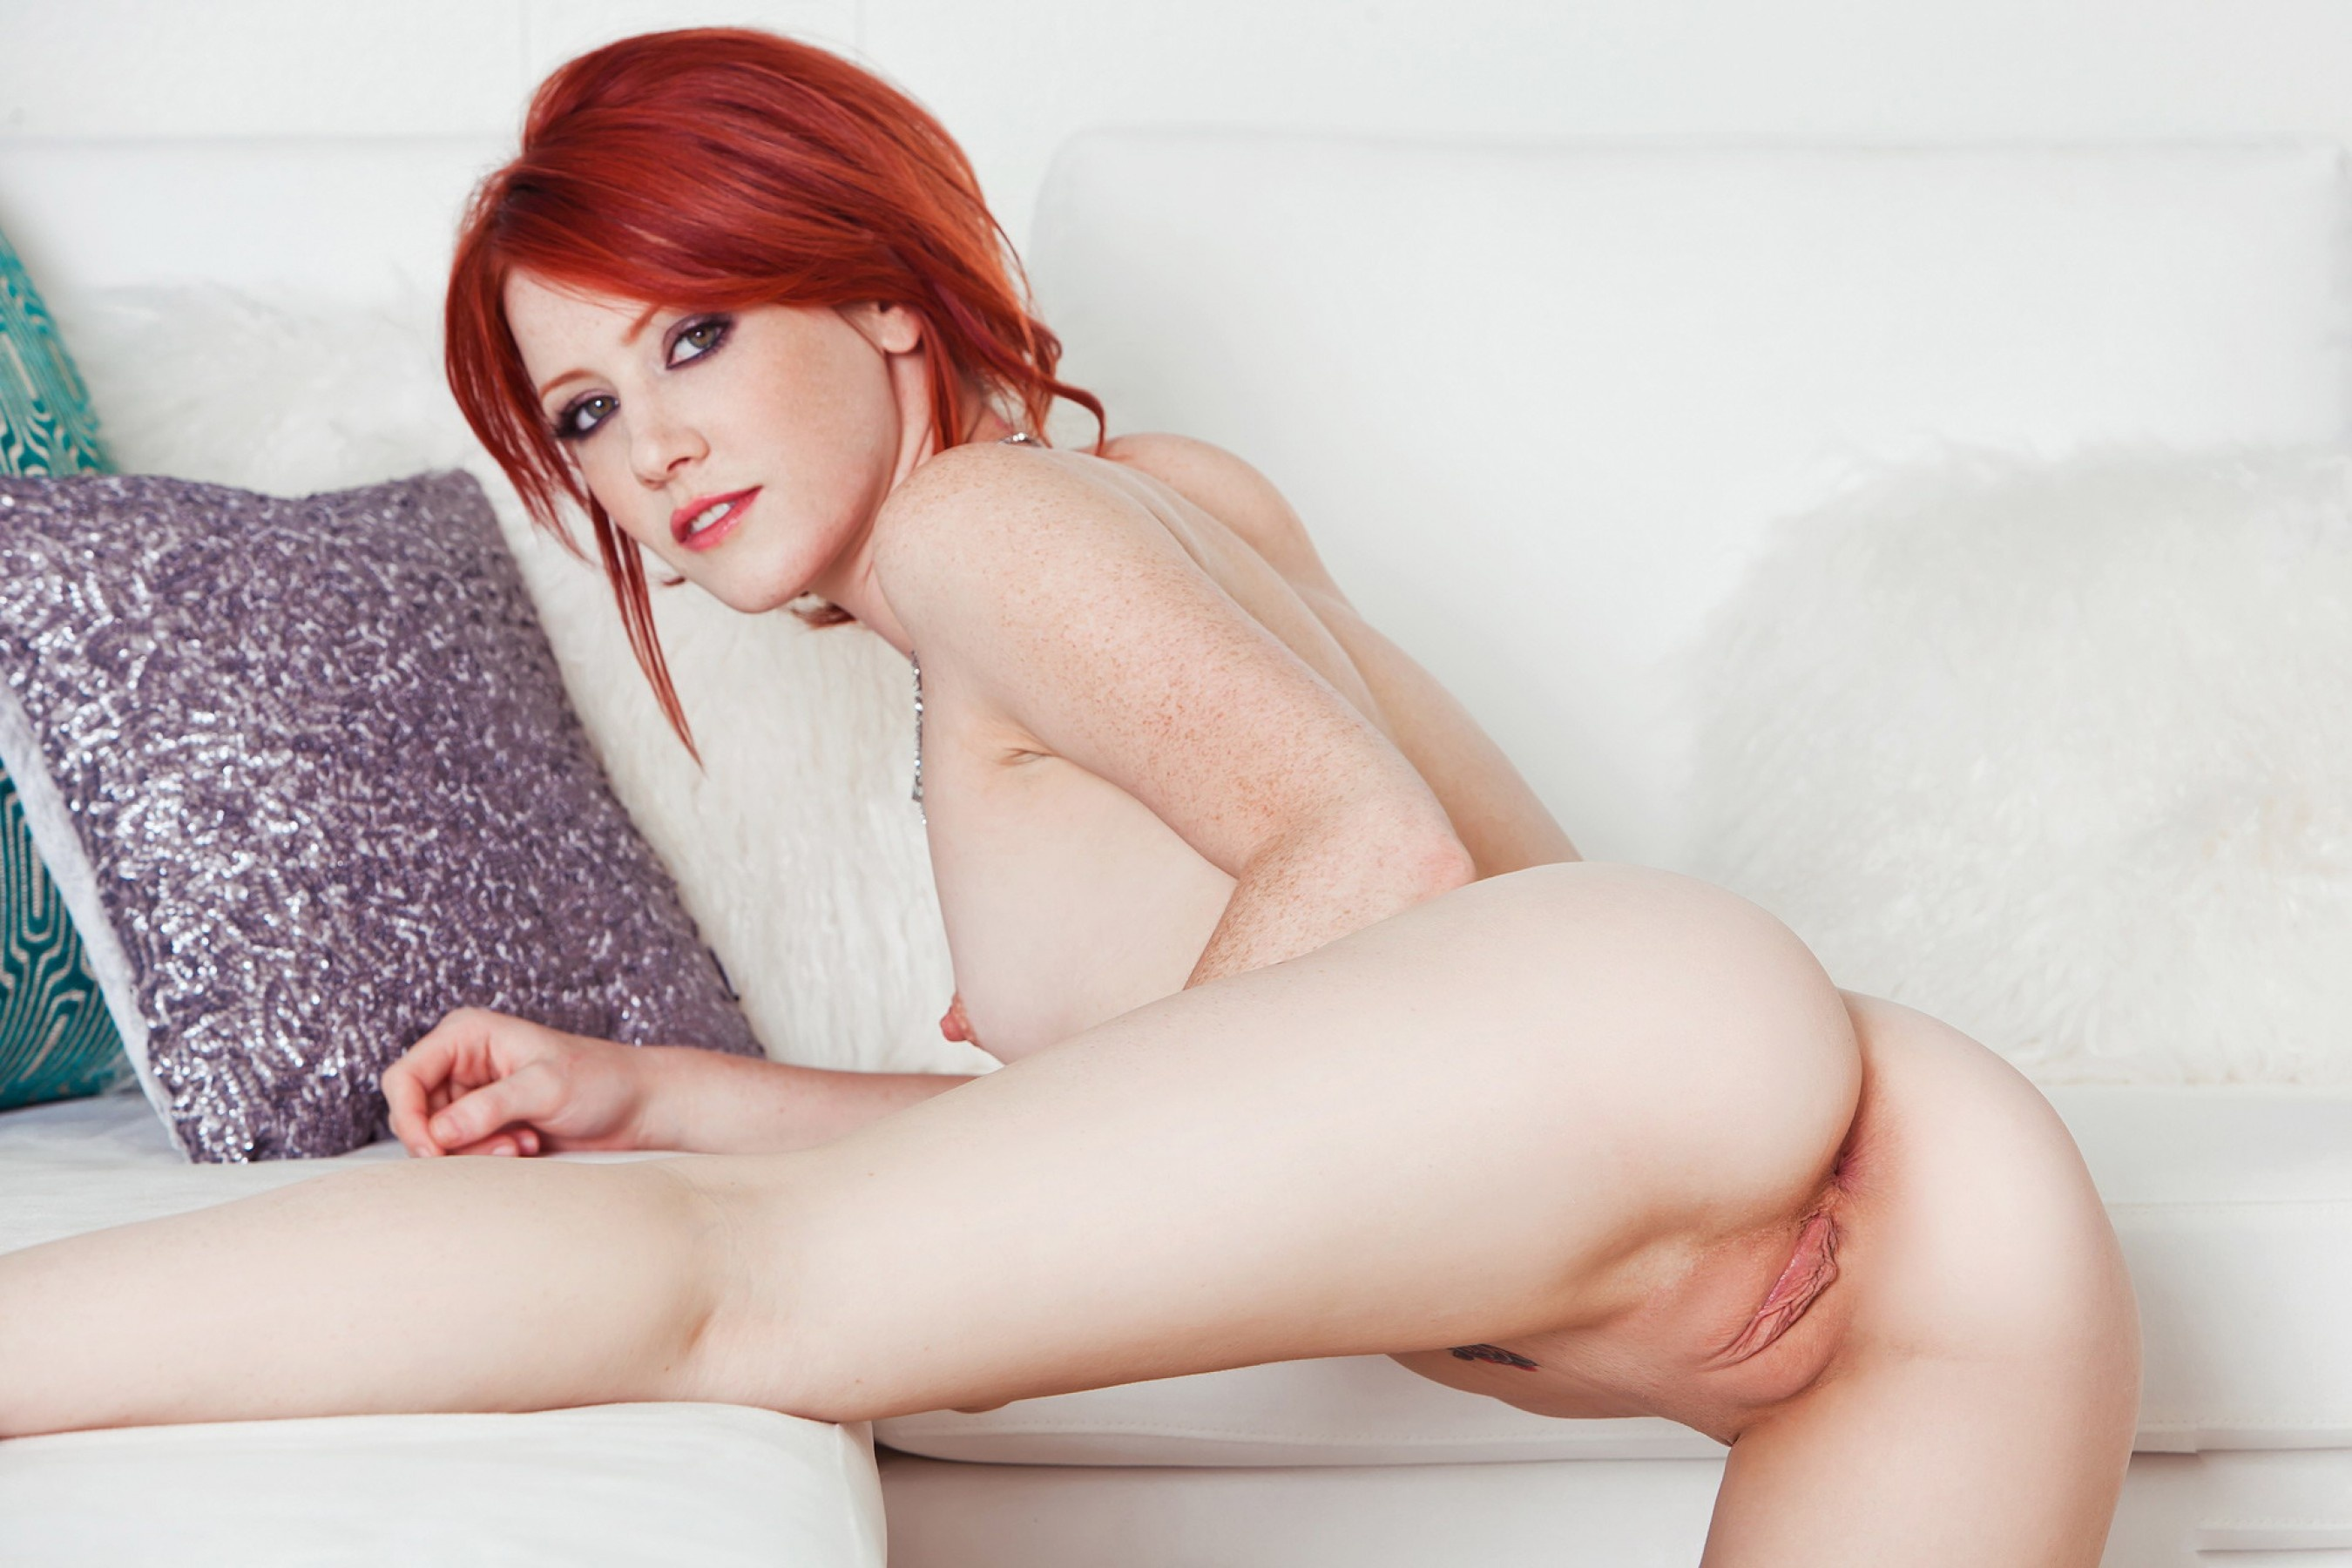 Babe naked red hair pornos thumbs